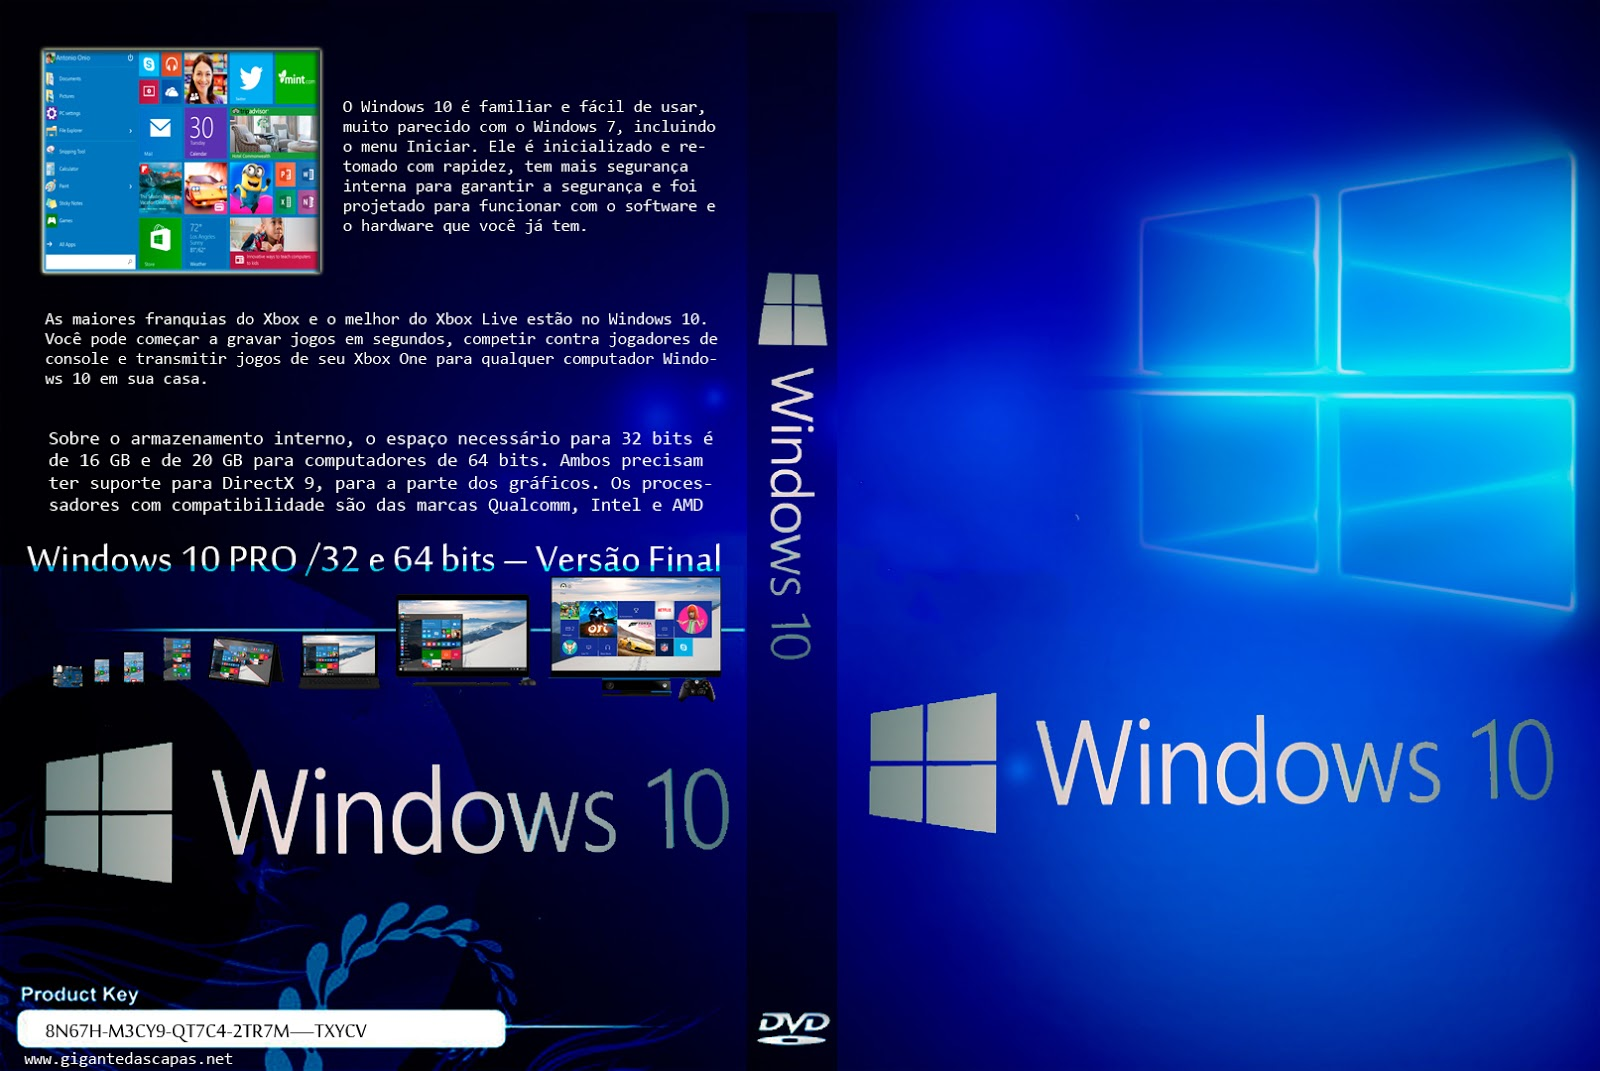 Download Windows 10 Pro x86/x64 PT-BR Windows 2B10